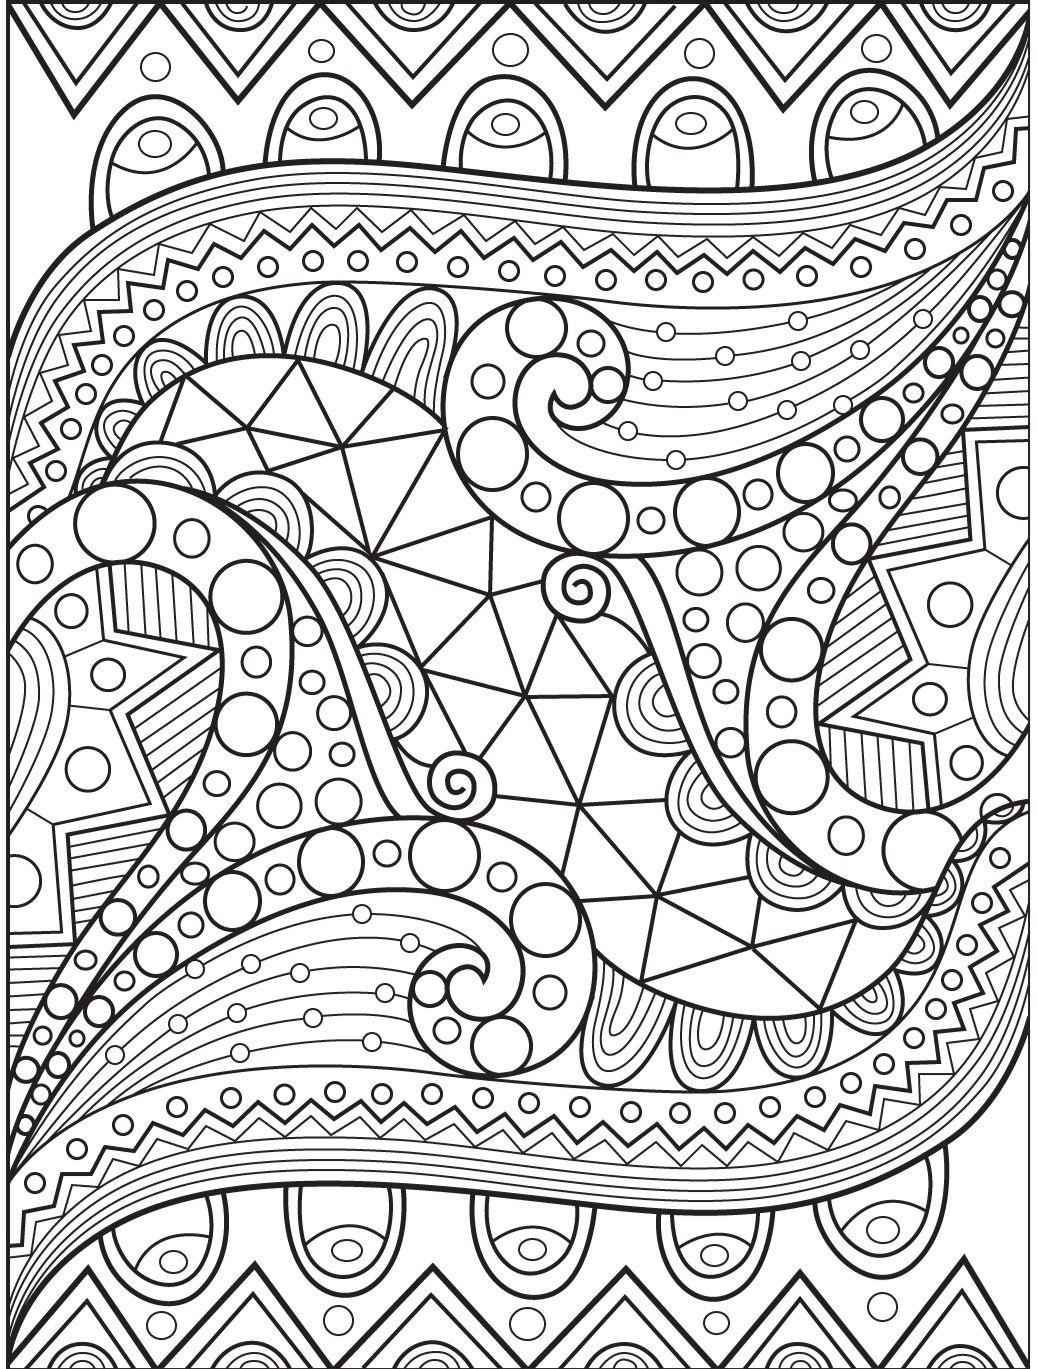 23 Abstract Printable Coloring Pages Download - Coloring Sheets